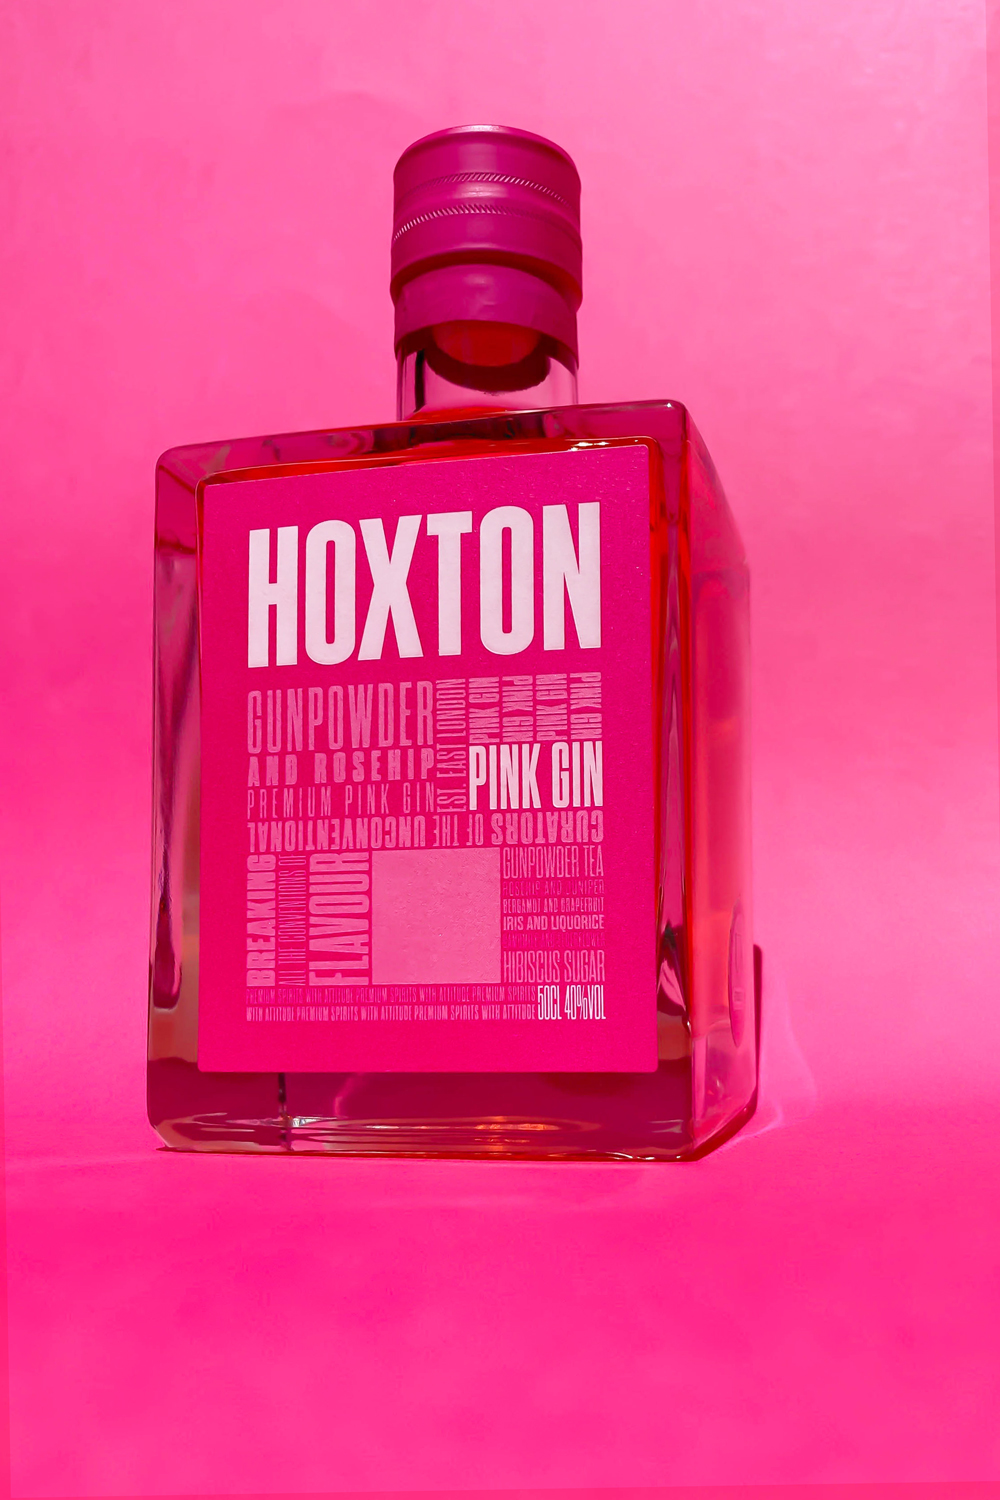 premium pink gin with a bang! Introducing the new look Hoxton Pink Gin. - Made using botanicals such as juniper, gunpowder tea, rosehip, grapefruit, liquorice, chamomile, elderflower and orris.